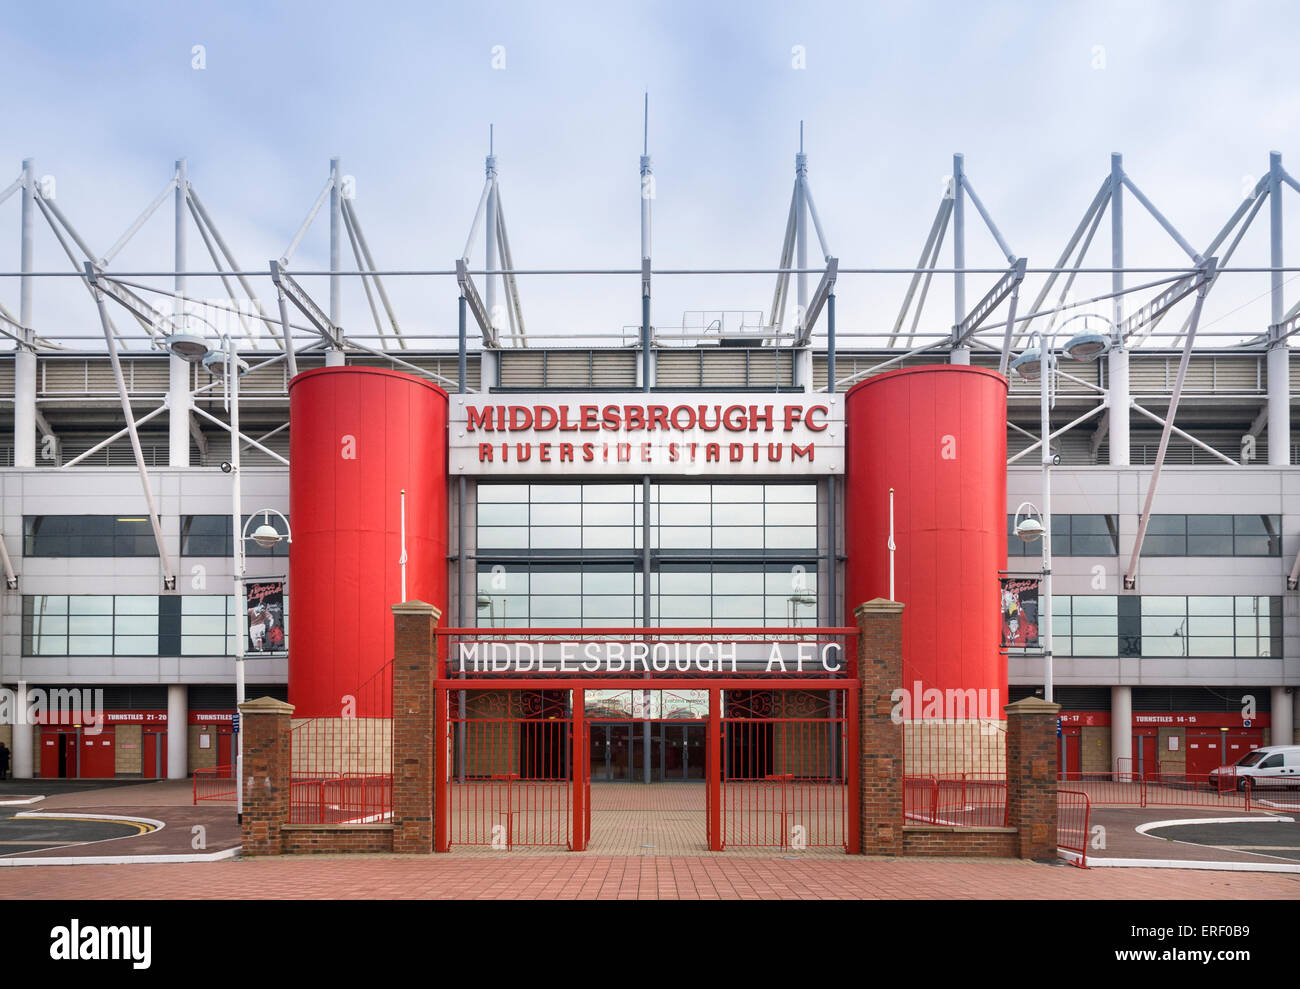 Ayresome Park Gates At The Riverside Stadium Middlesbrough Home To